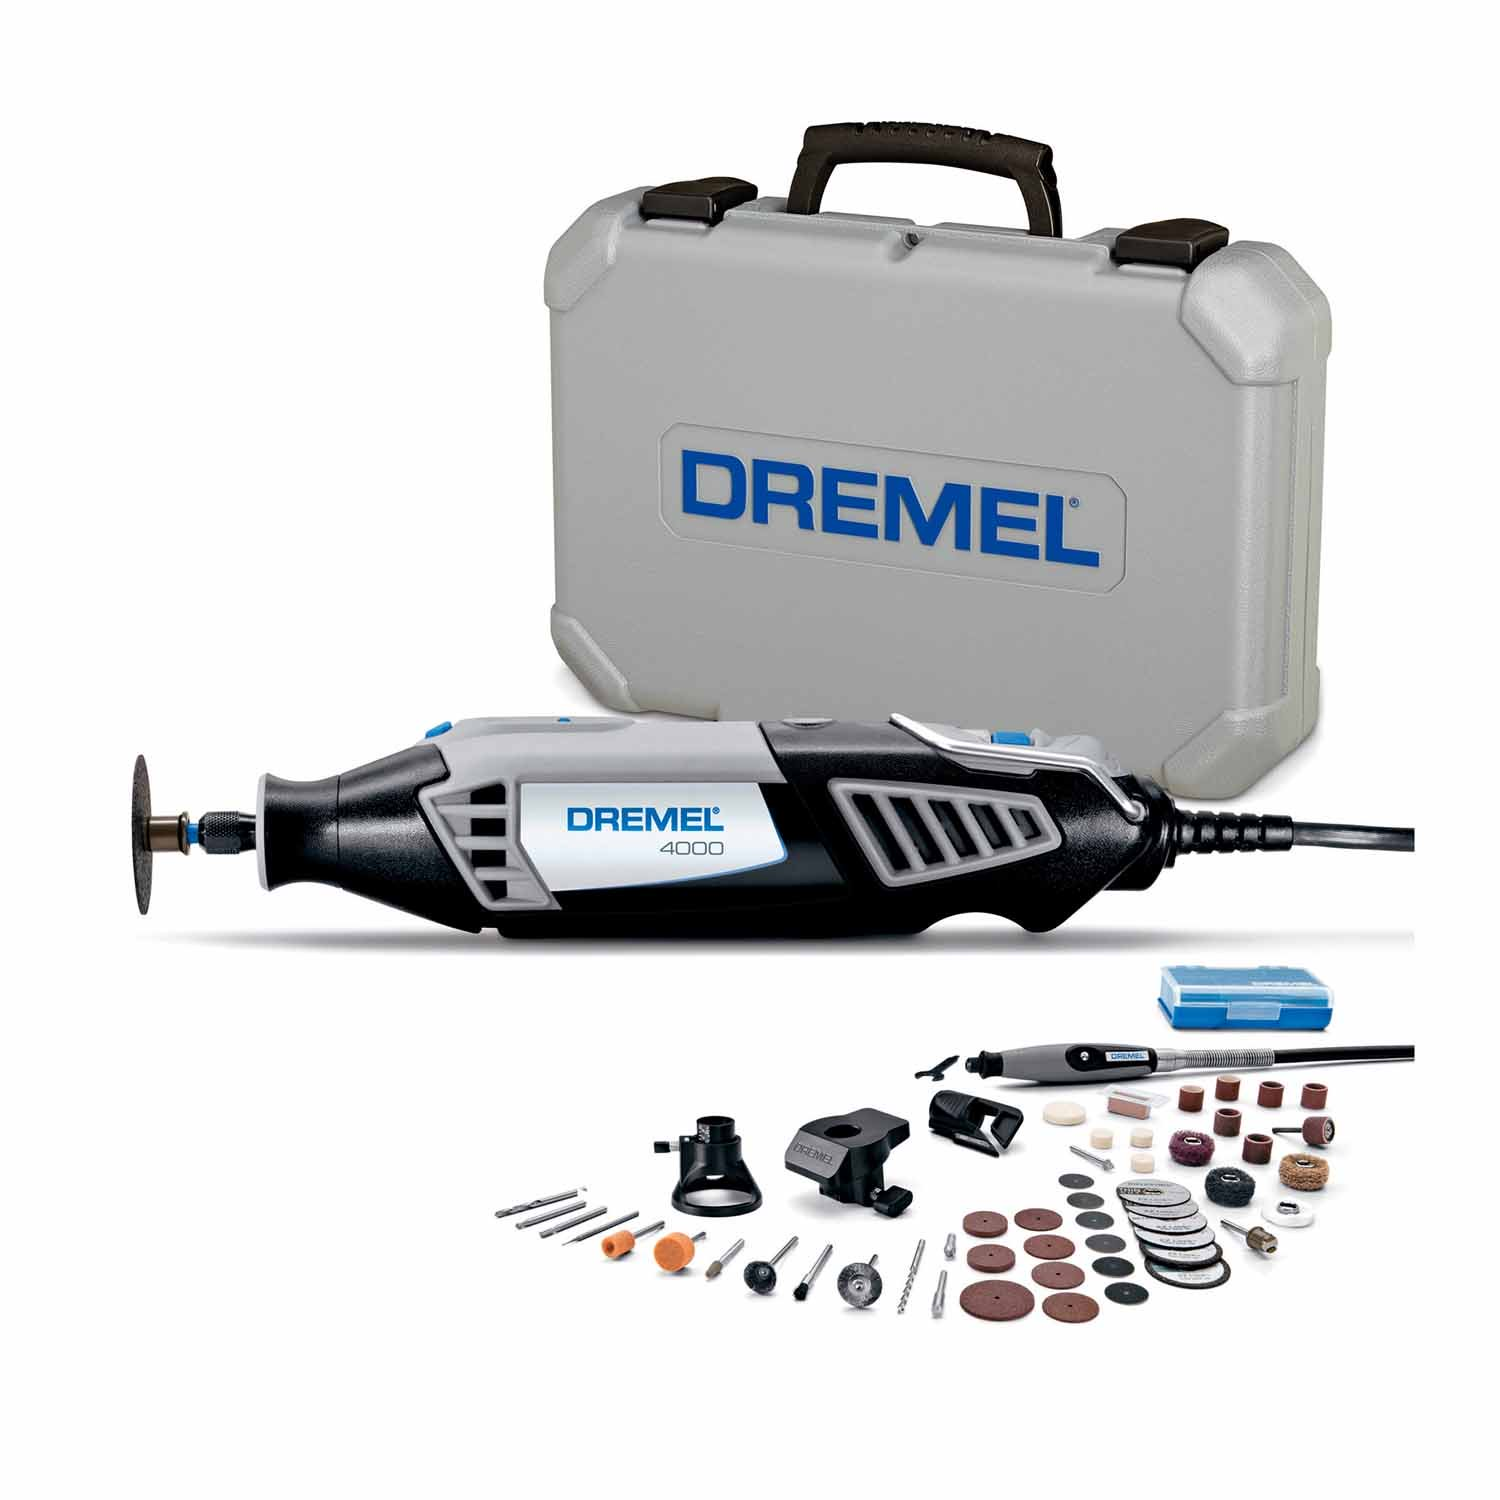 $325 Of Dremel Gears For $200 Dremel Rotary Tool Kit With Flexi Shaft From Mitre 10 Mega Palmerston North